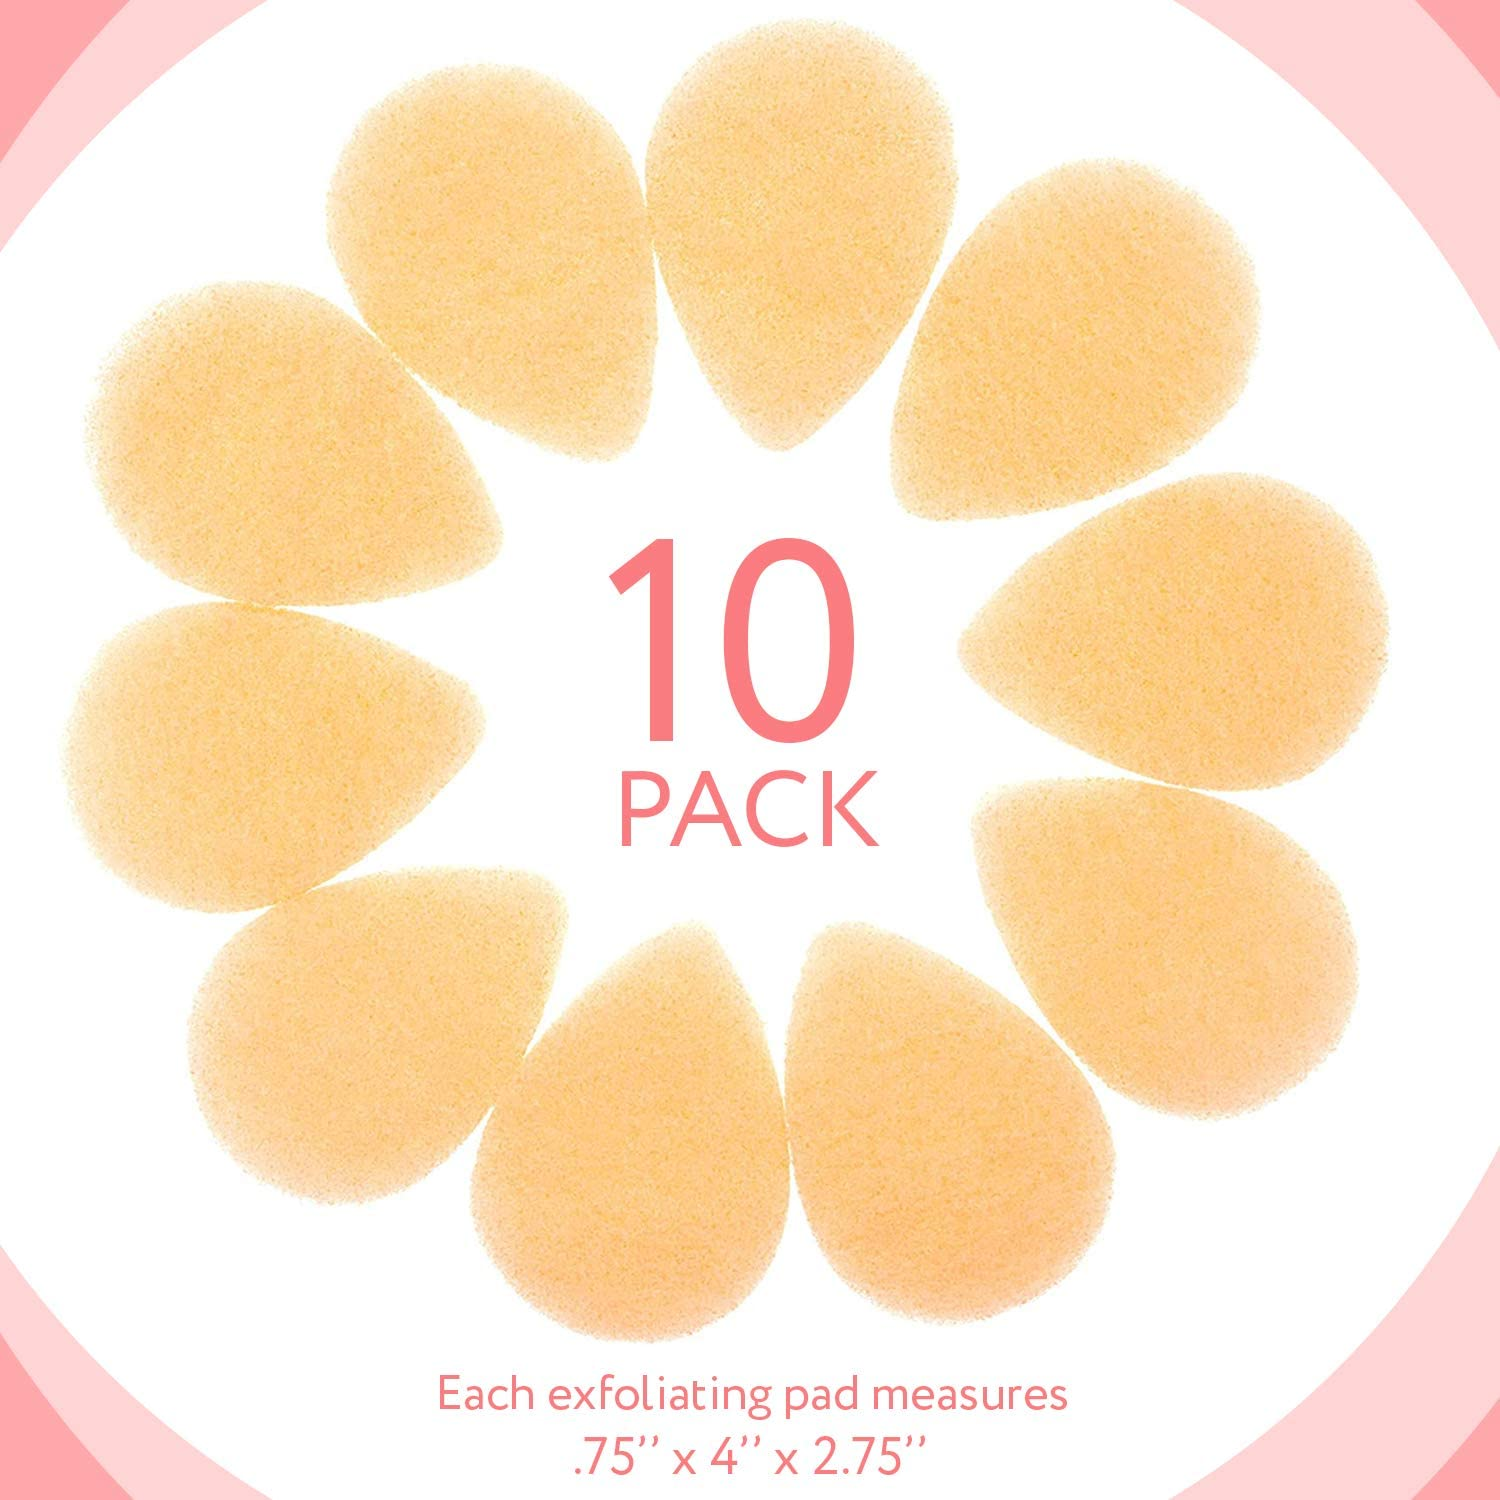 10 Pack Facial Sponge for Daily Cleansing and Gentle Exfoliating - Buff Puff Style Exfoliating Pads Perfect for Removing Dead Skin, Dirt and Makeup - Reusable Puf, Made in The USA: Health & Personal Care